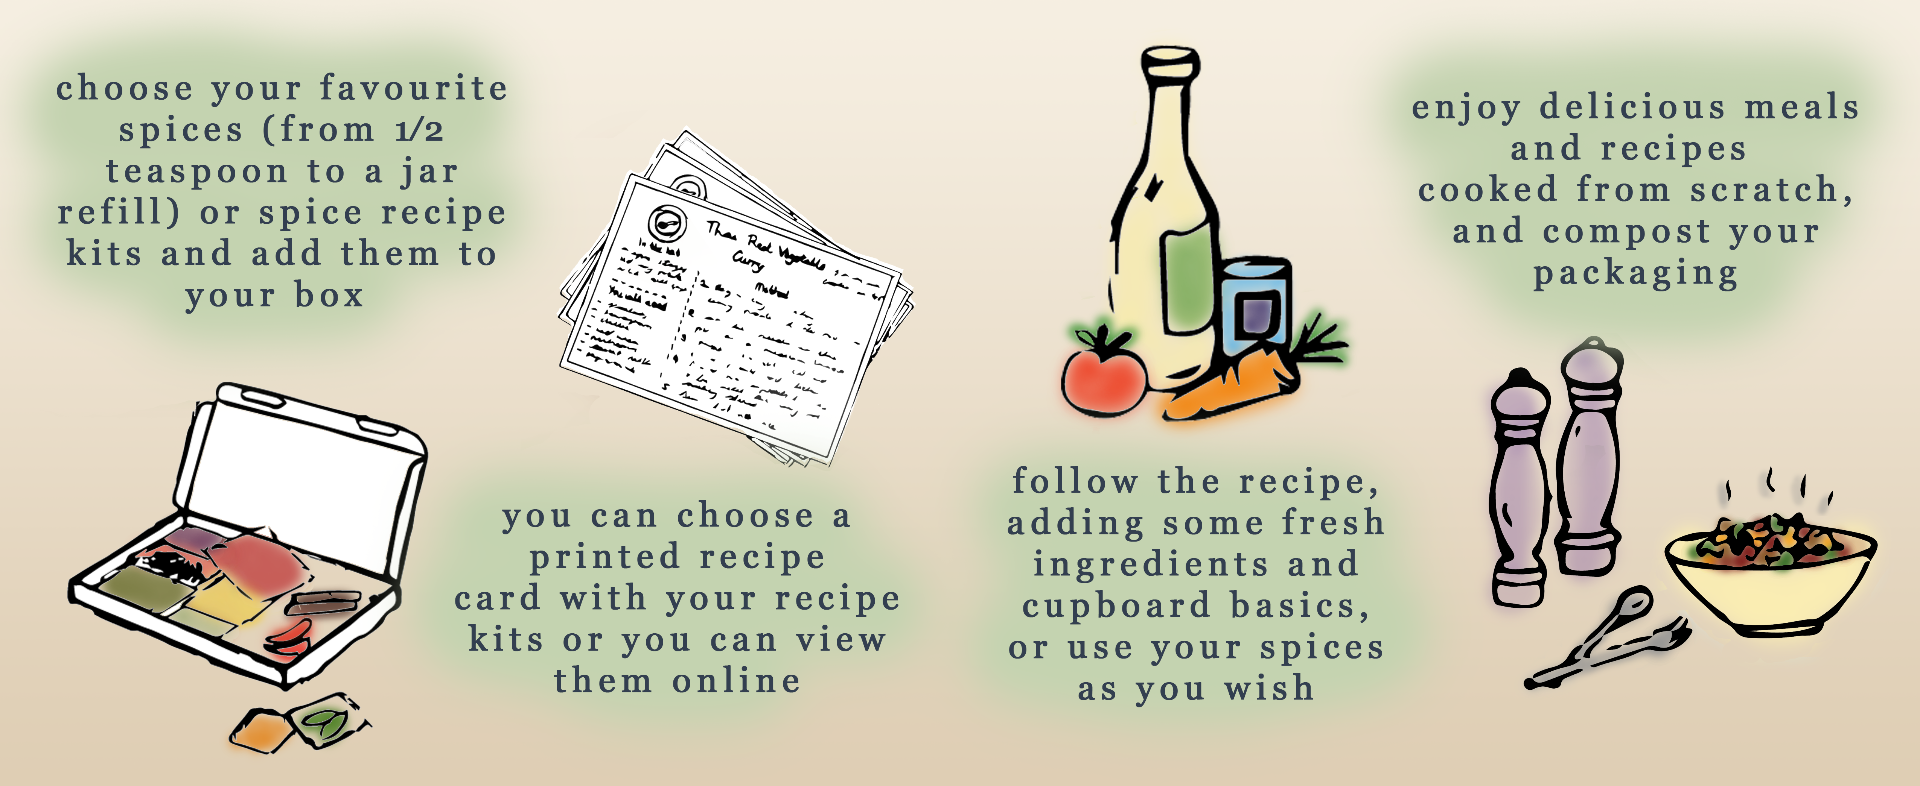 A step by step instruction cartoon. Step 1, choosing your kits, with a picture of a cartoon open box. Step 2, a printed recipe card is given with every kit. Step 3, Follow the recipe card with cartoon pictures of fresh ingredients. Step 4, Enjoy delicious meals from scratch. A cartoon of a warm bowl of food with salt and pepper